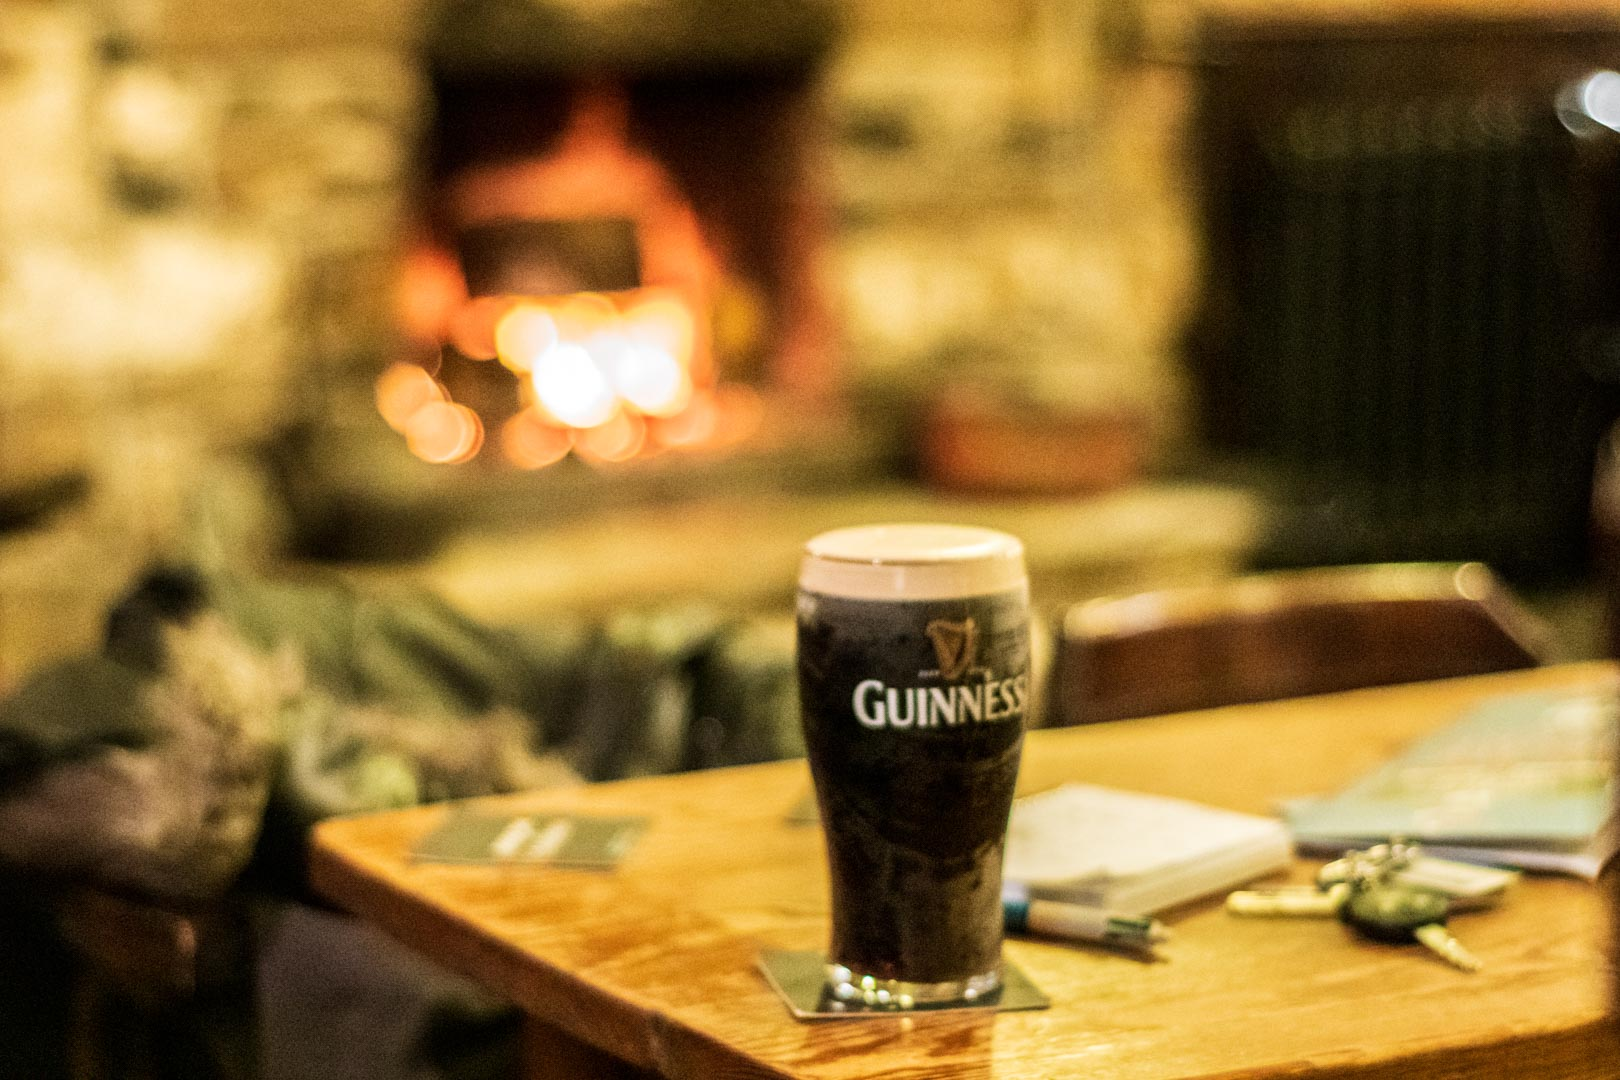 guinness by the fire in an irish pub